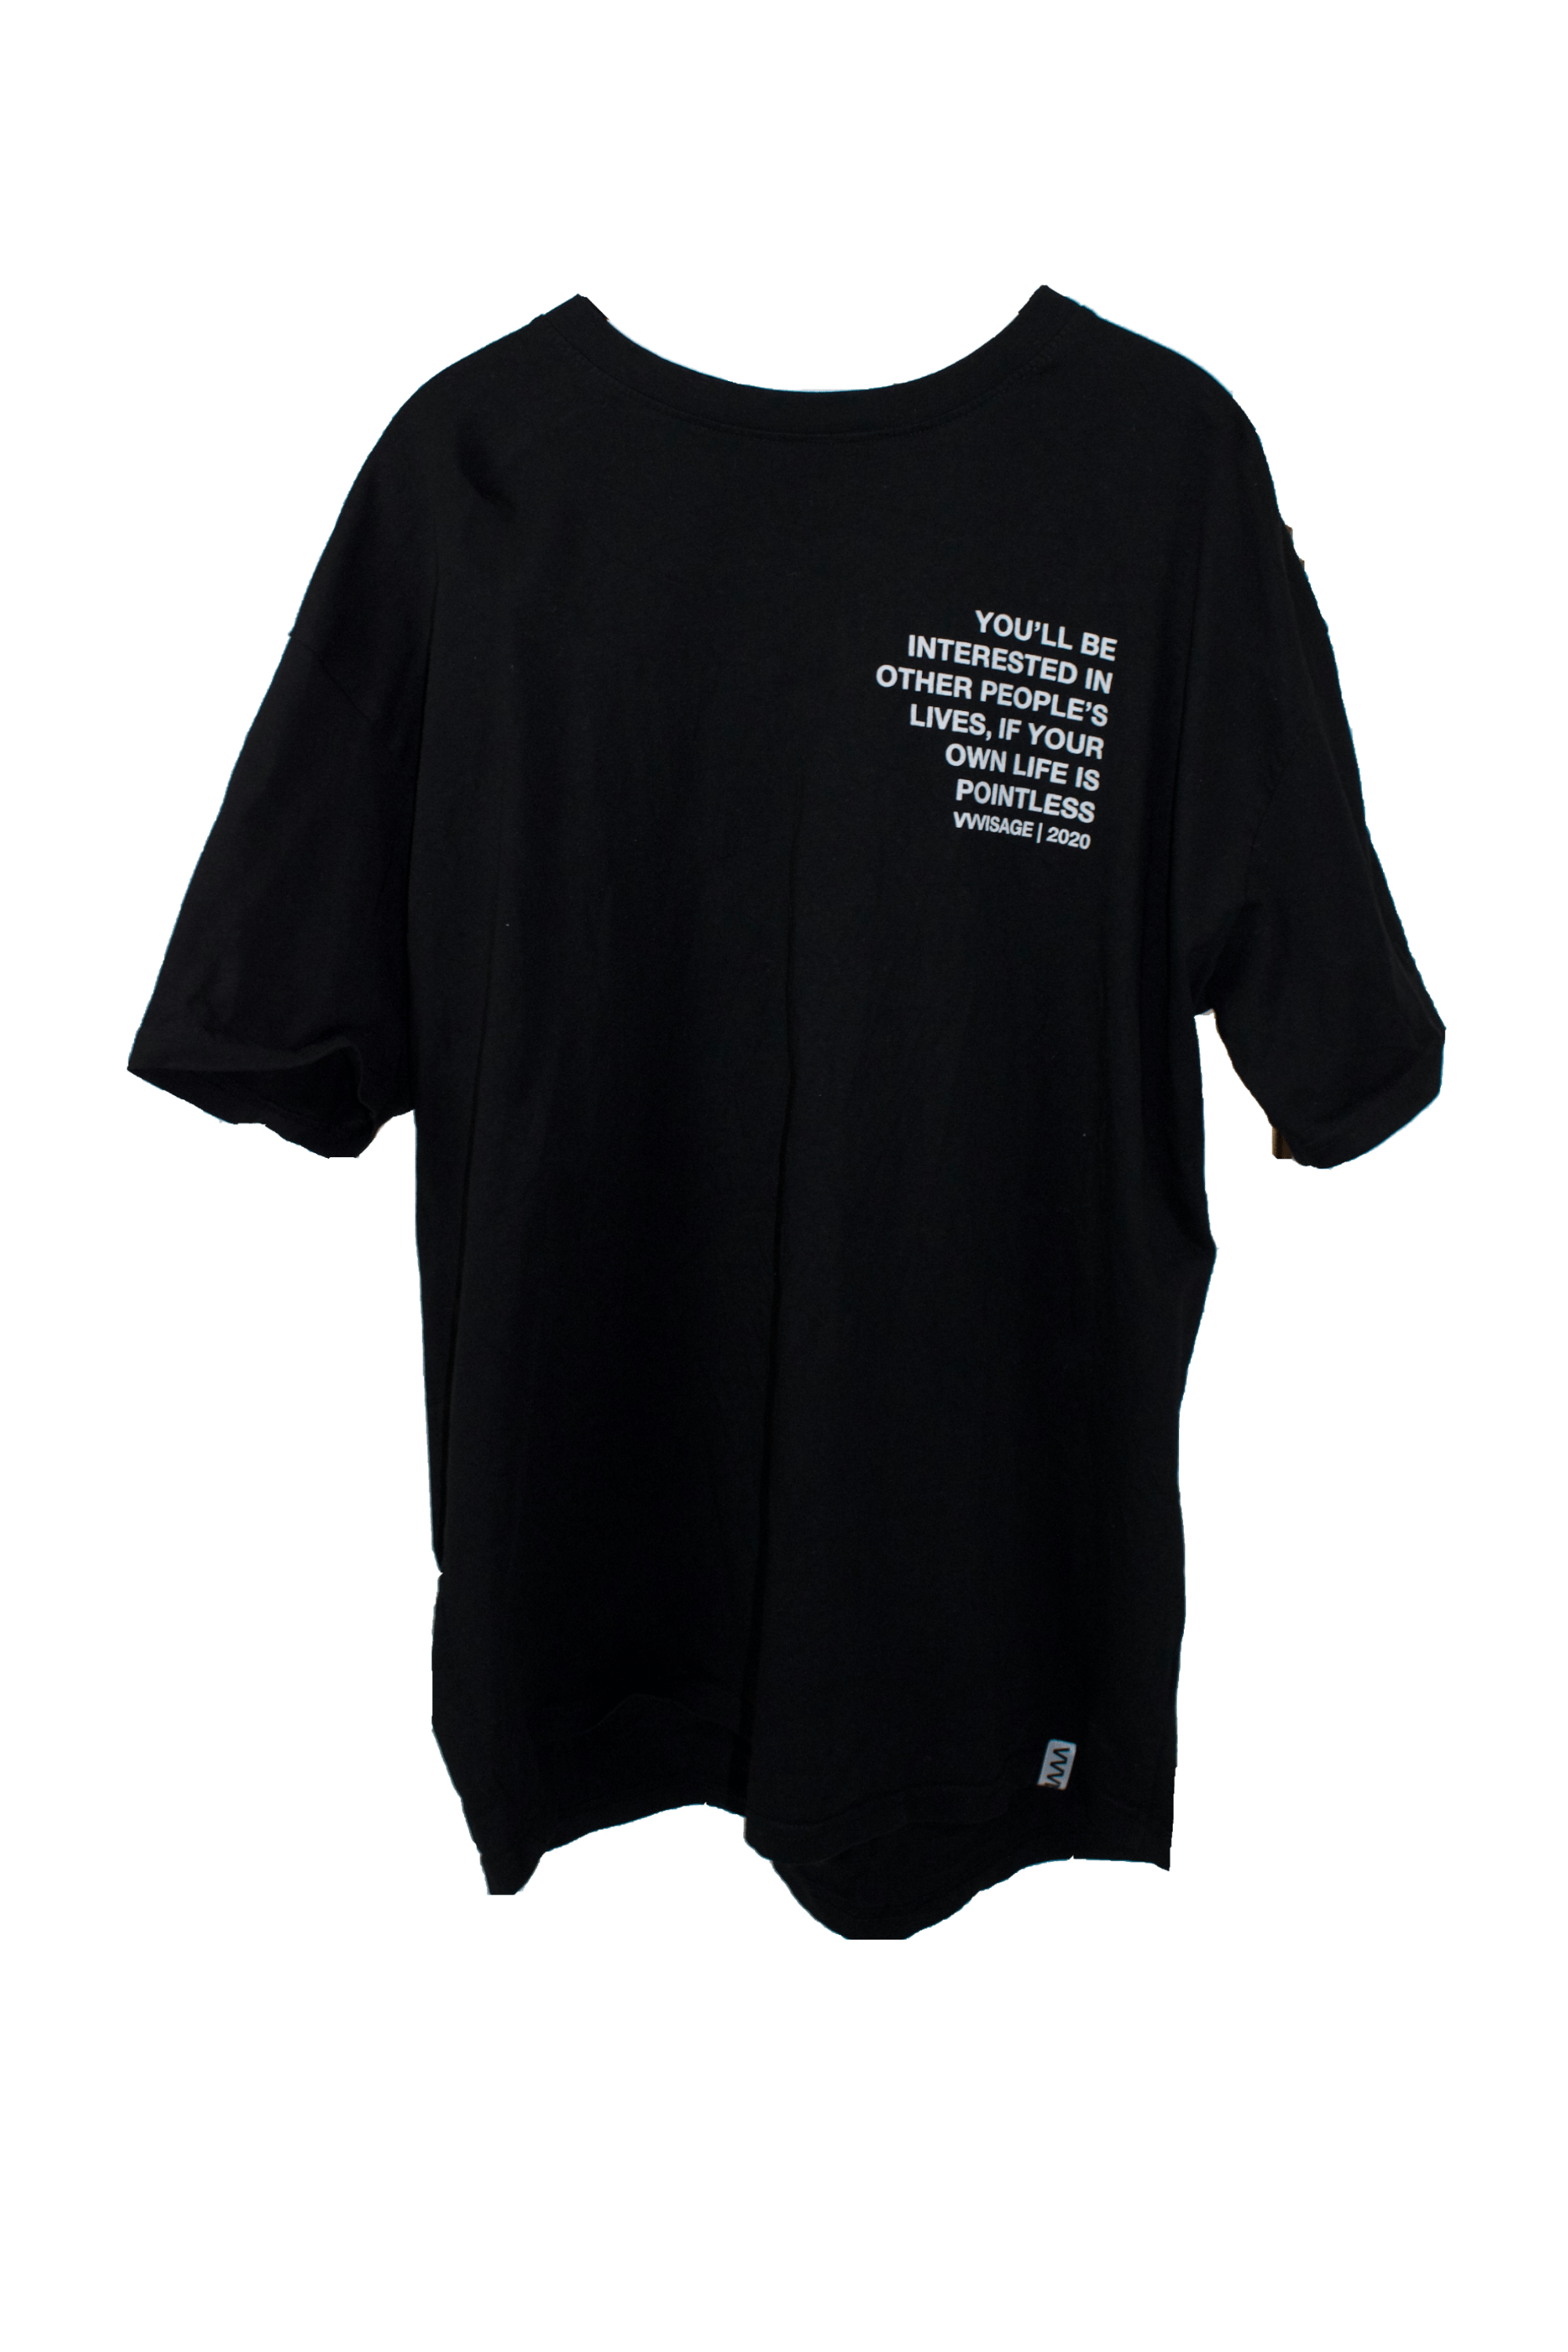 ss2020-black-front